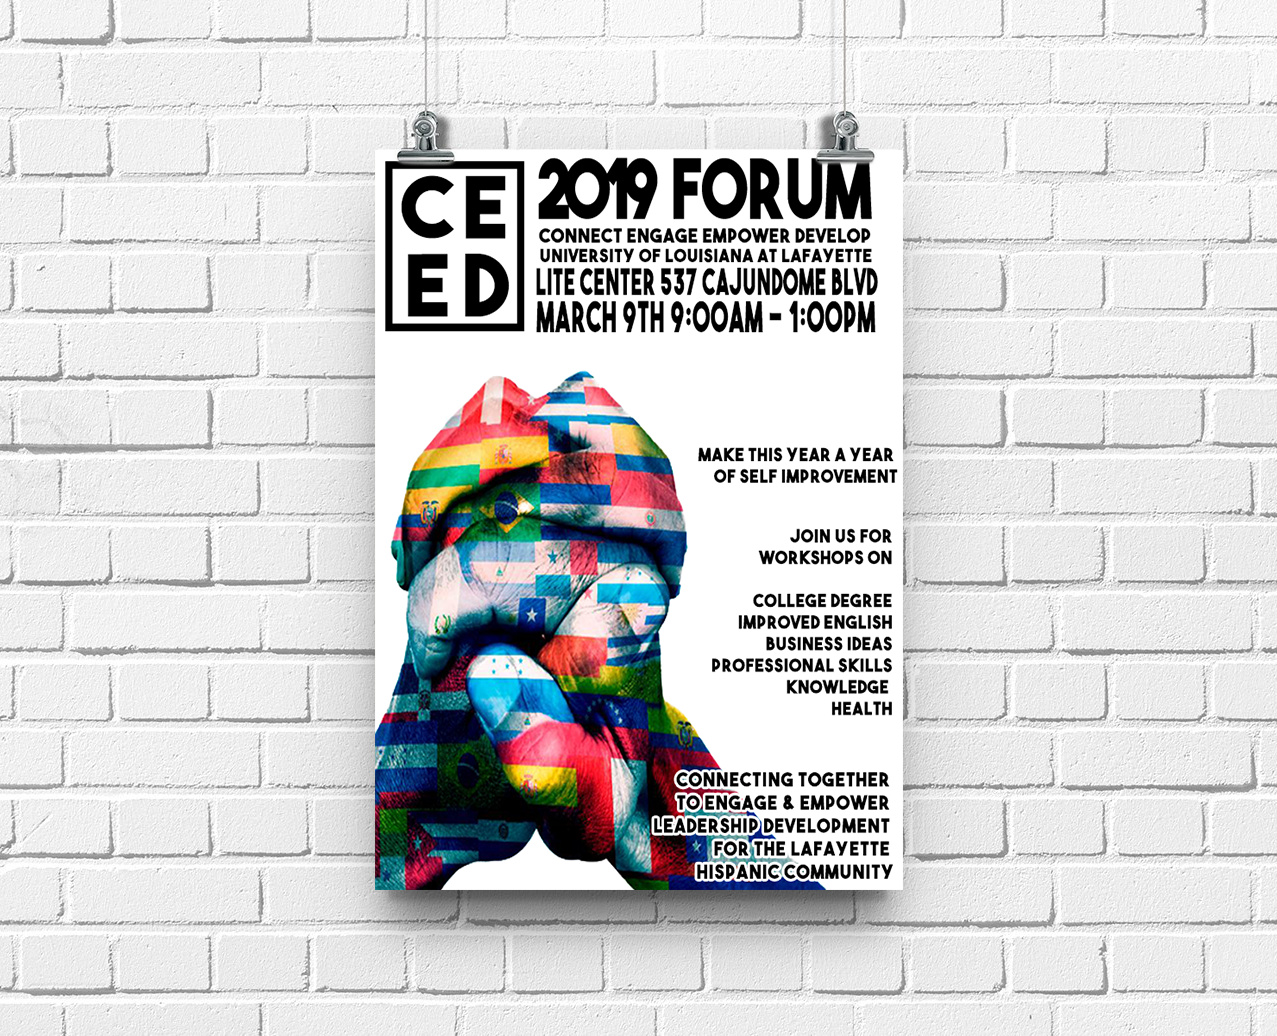 Emerald City Digital | CEED Forum | Poster